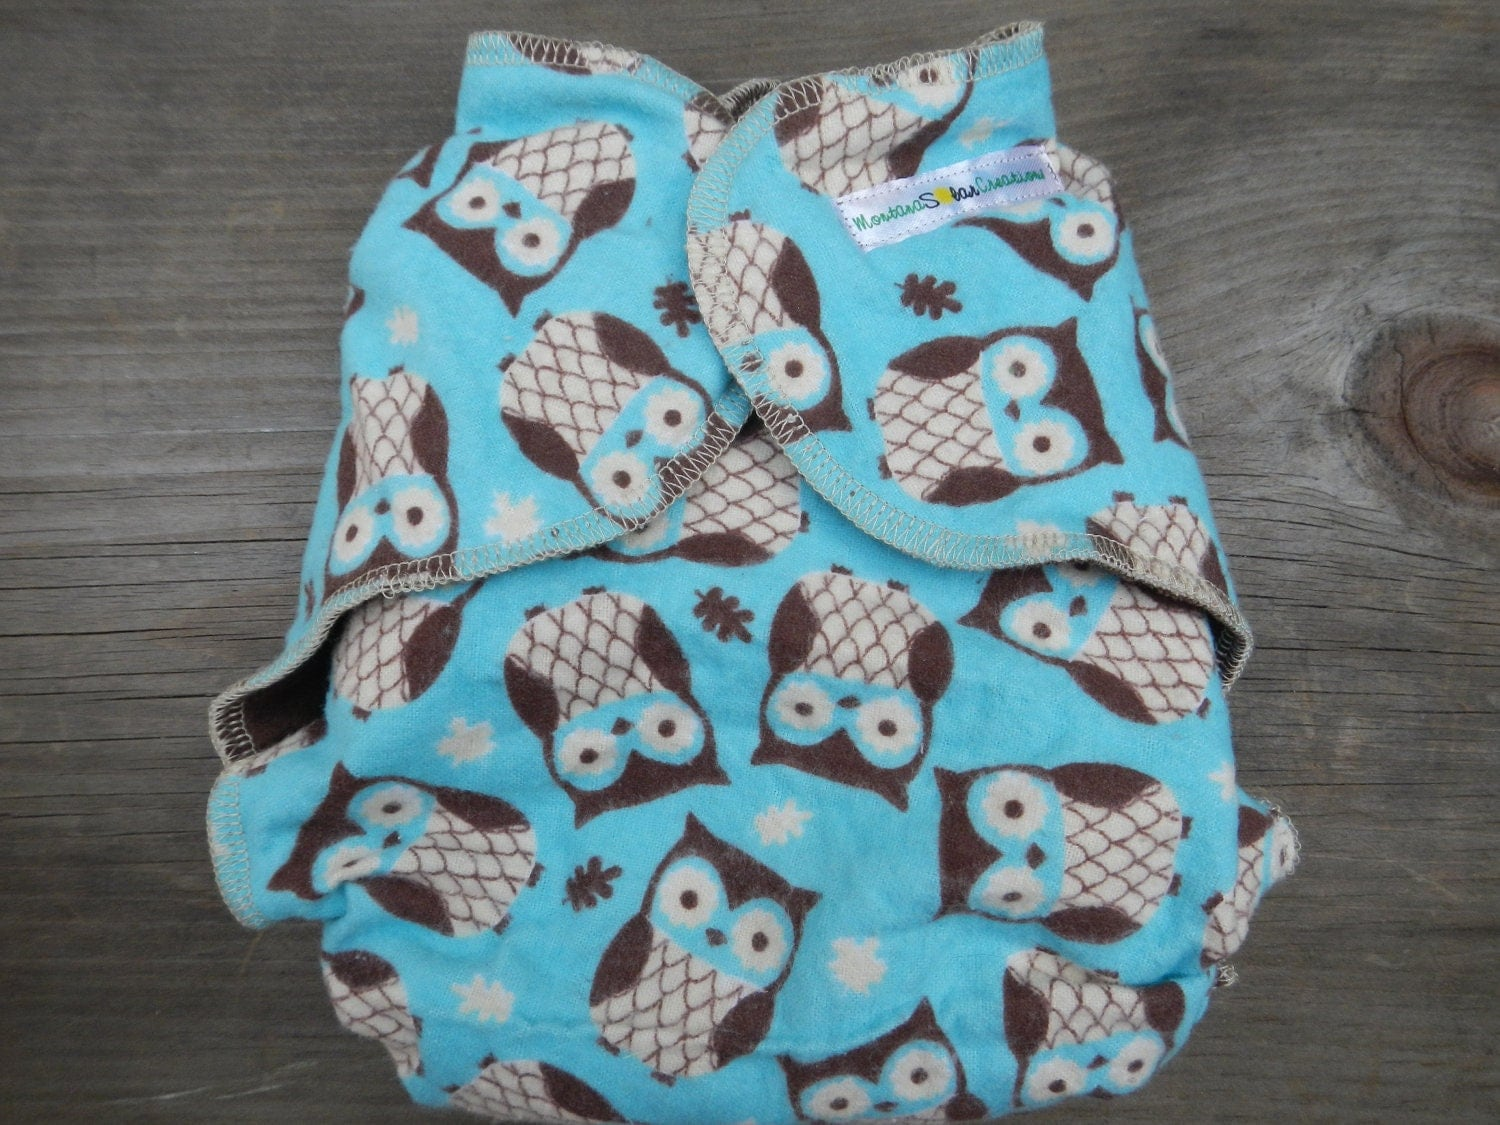 Owls fitted flannel cloth diaper nature boy girl soaker insert gender neutral one size fits all OS Upcycled Recycled Repurposed solar made